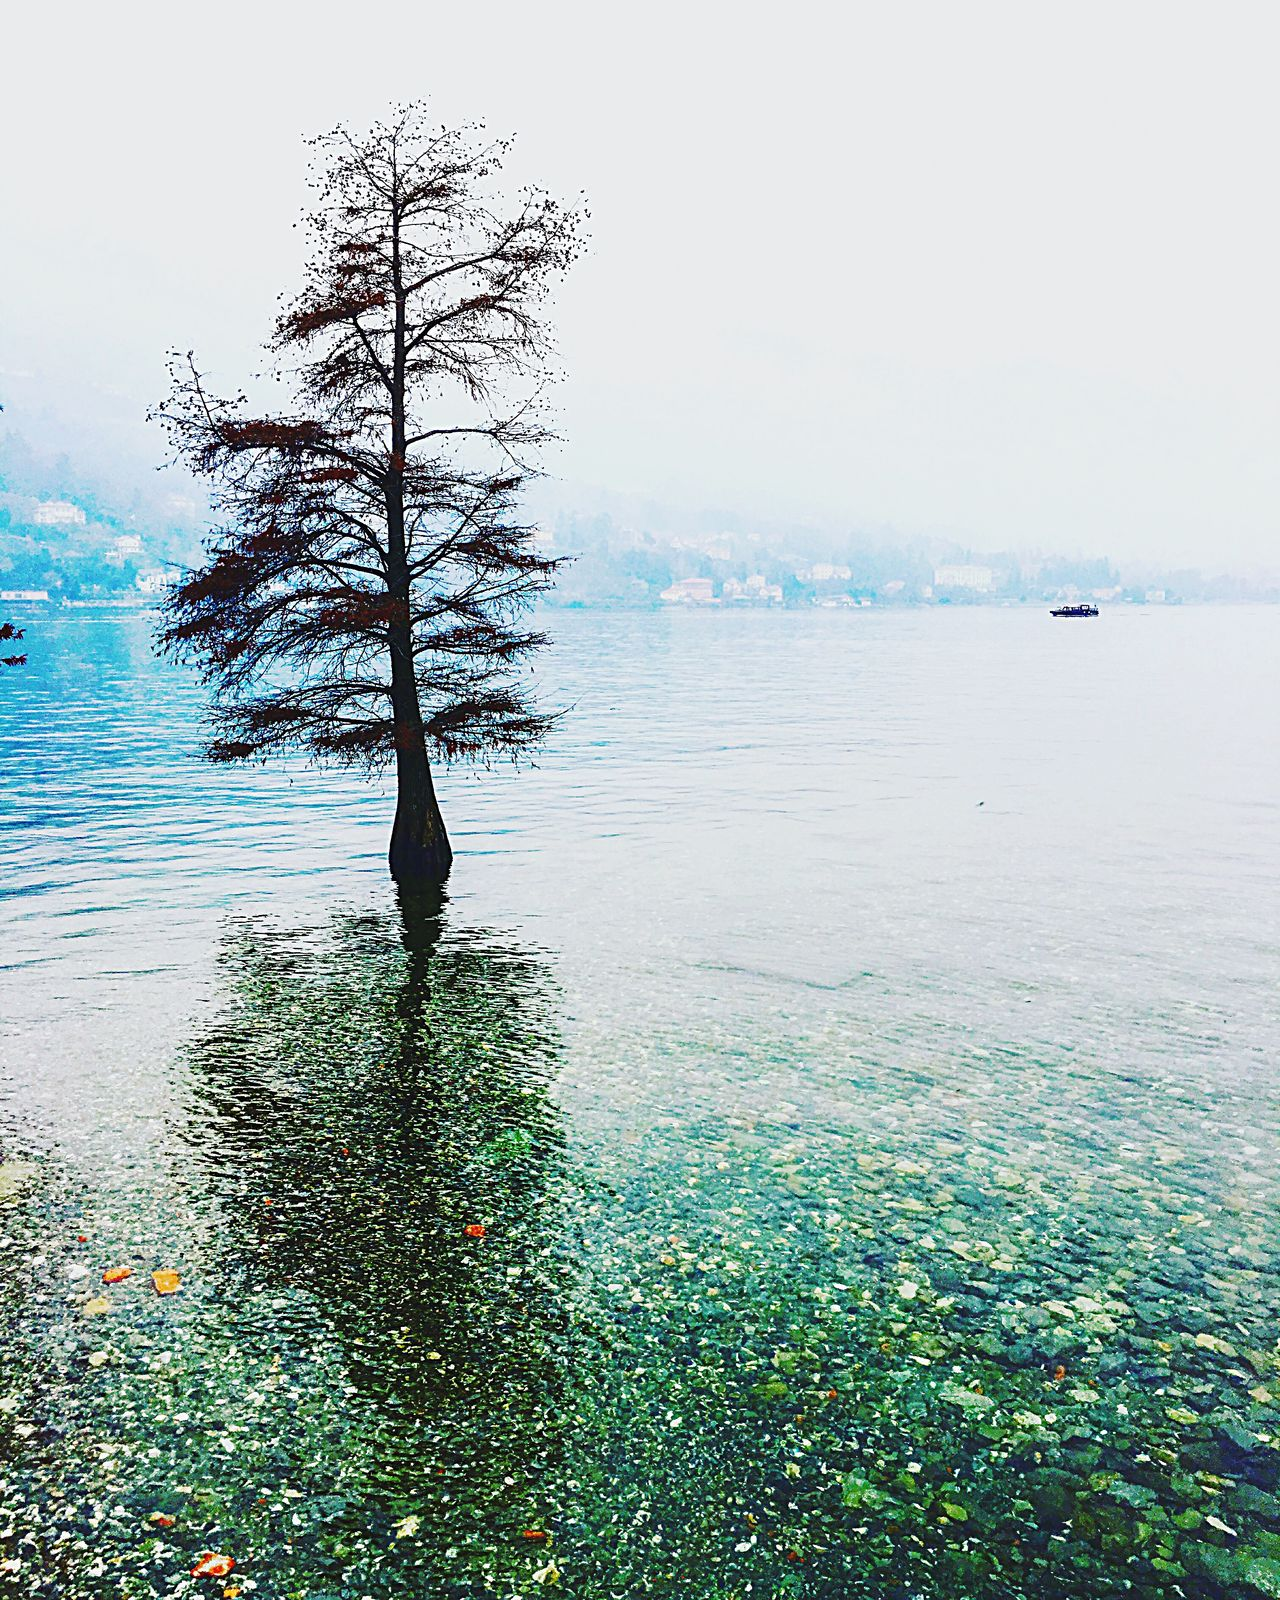 Nature Water Sea Beauty In Nature Tree Sky Tranquility Tranquil Scene Scenics Outdoors Day Growth Horizon Over Water No People